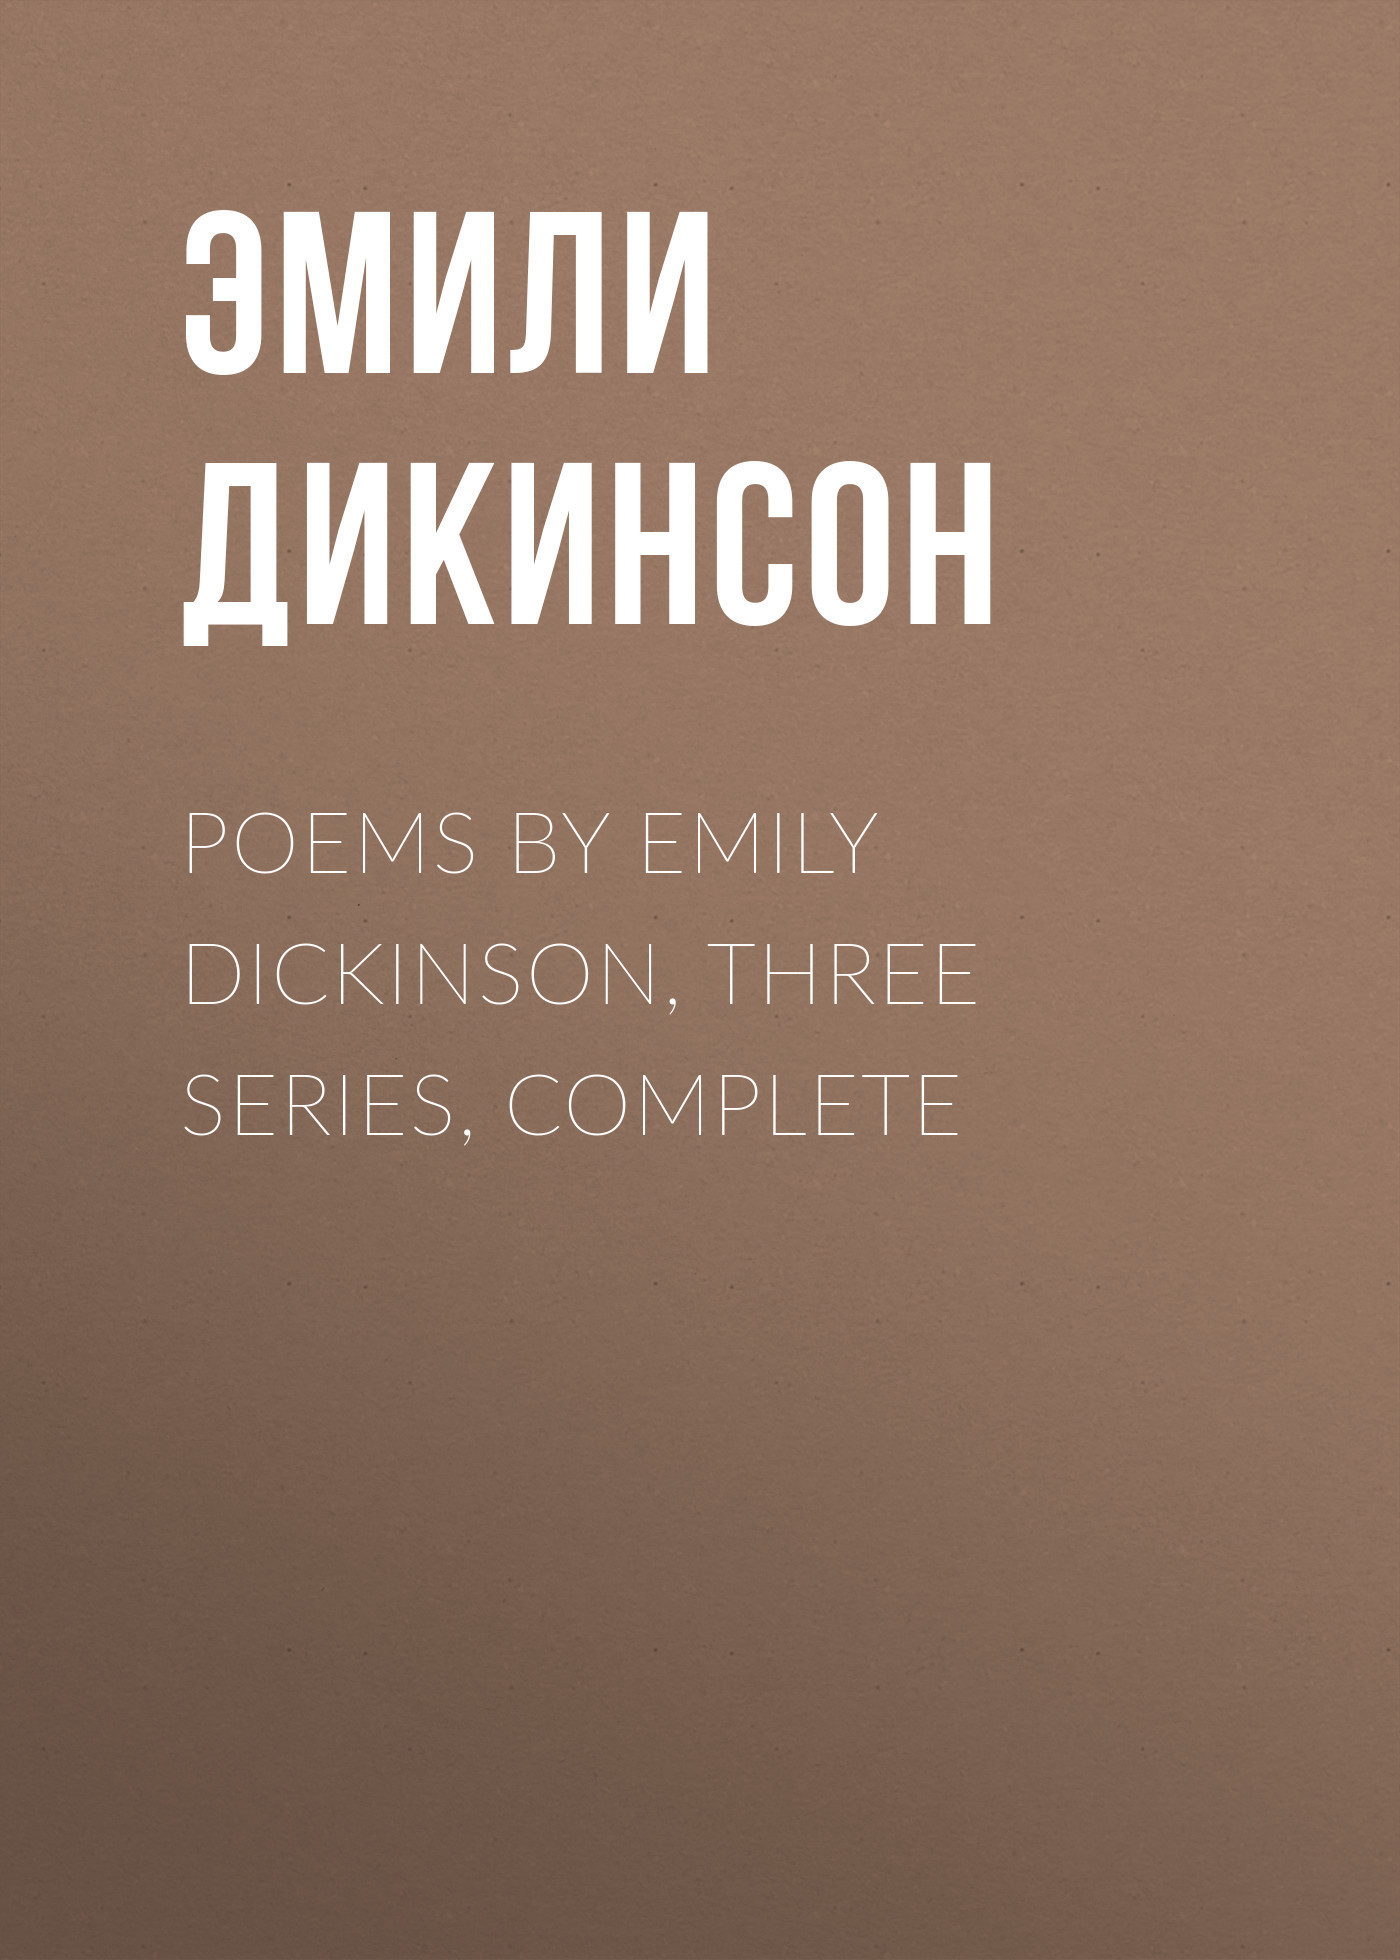 Эмили Дикинсон Poems by Emily Dickinson, Three Series, Complete эмили дикинсон дорога в небо перевод с